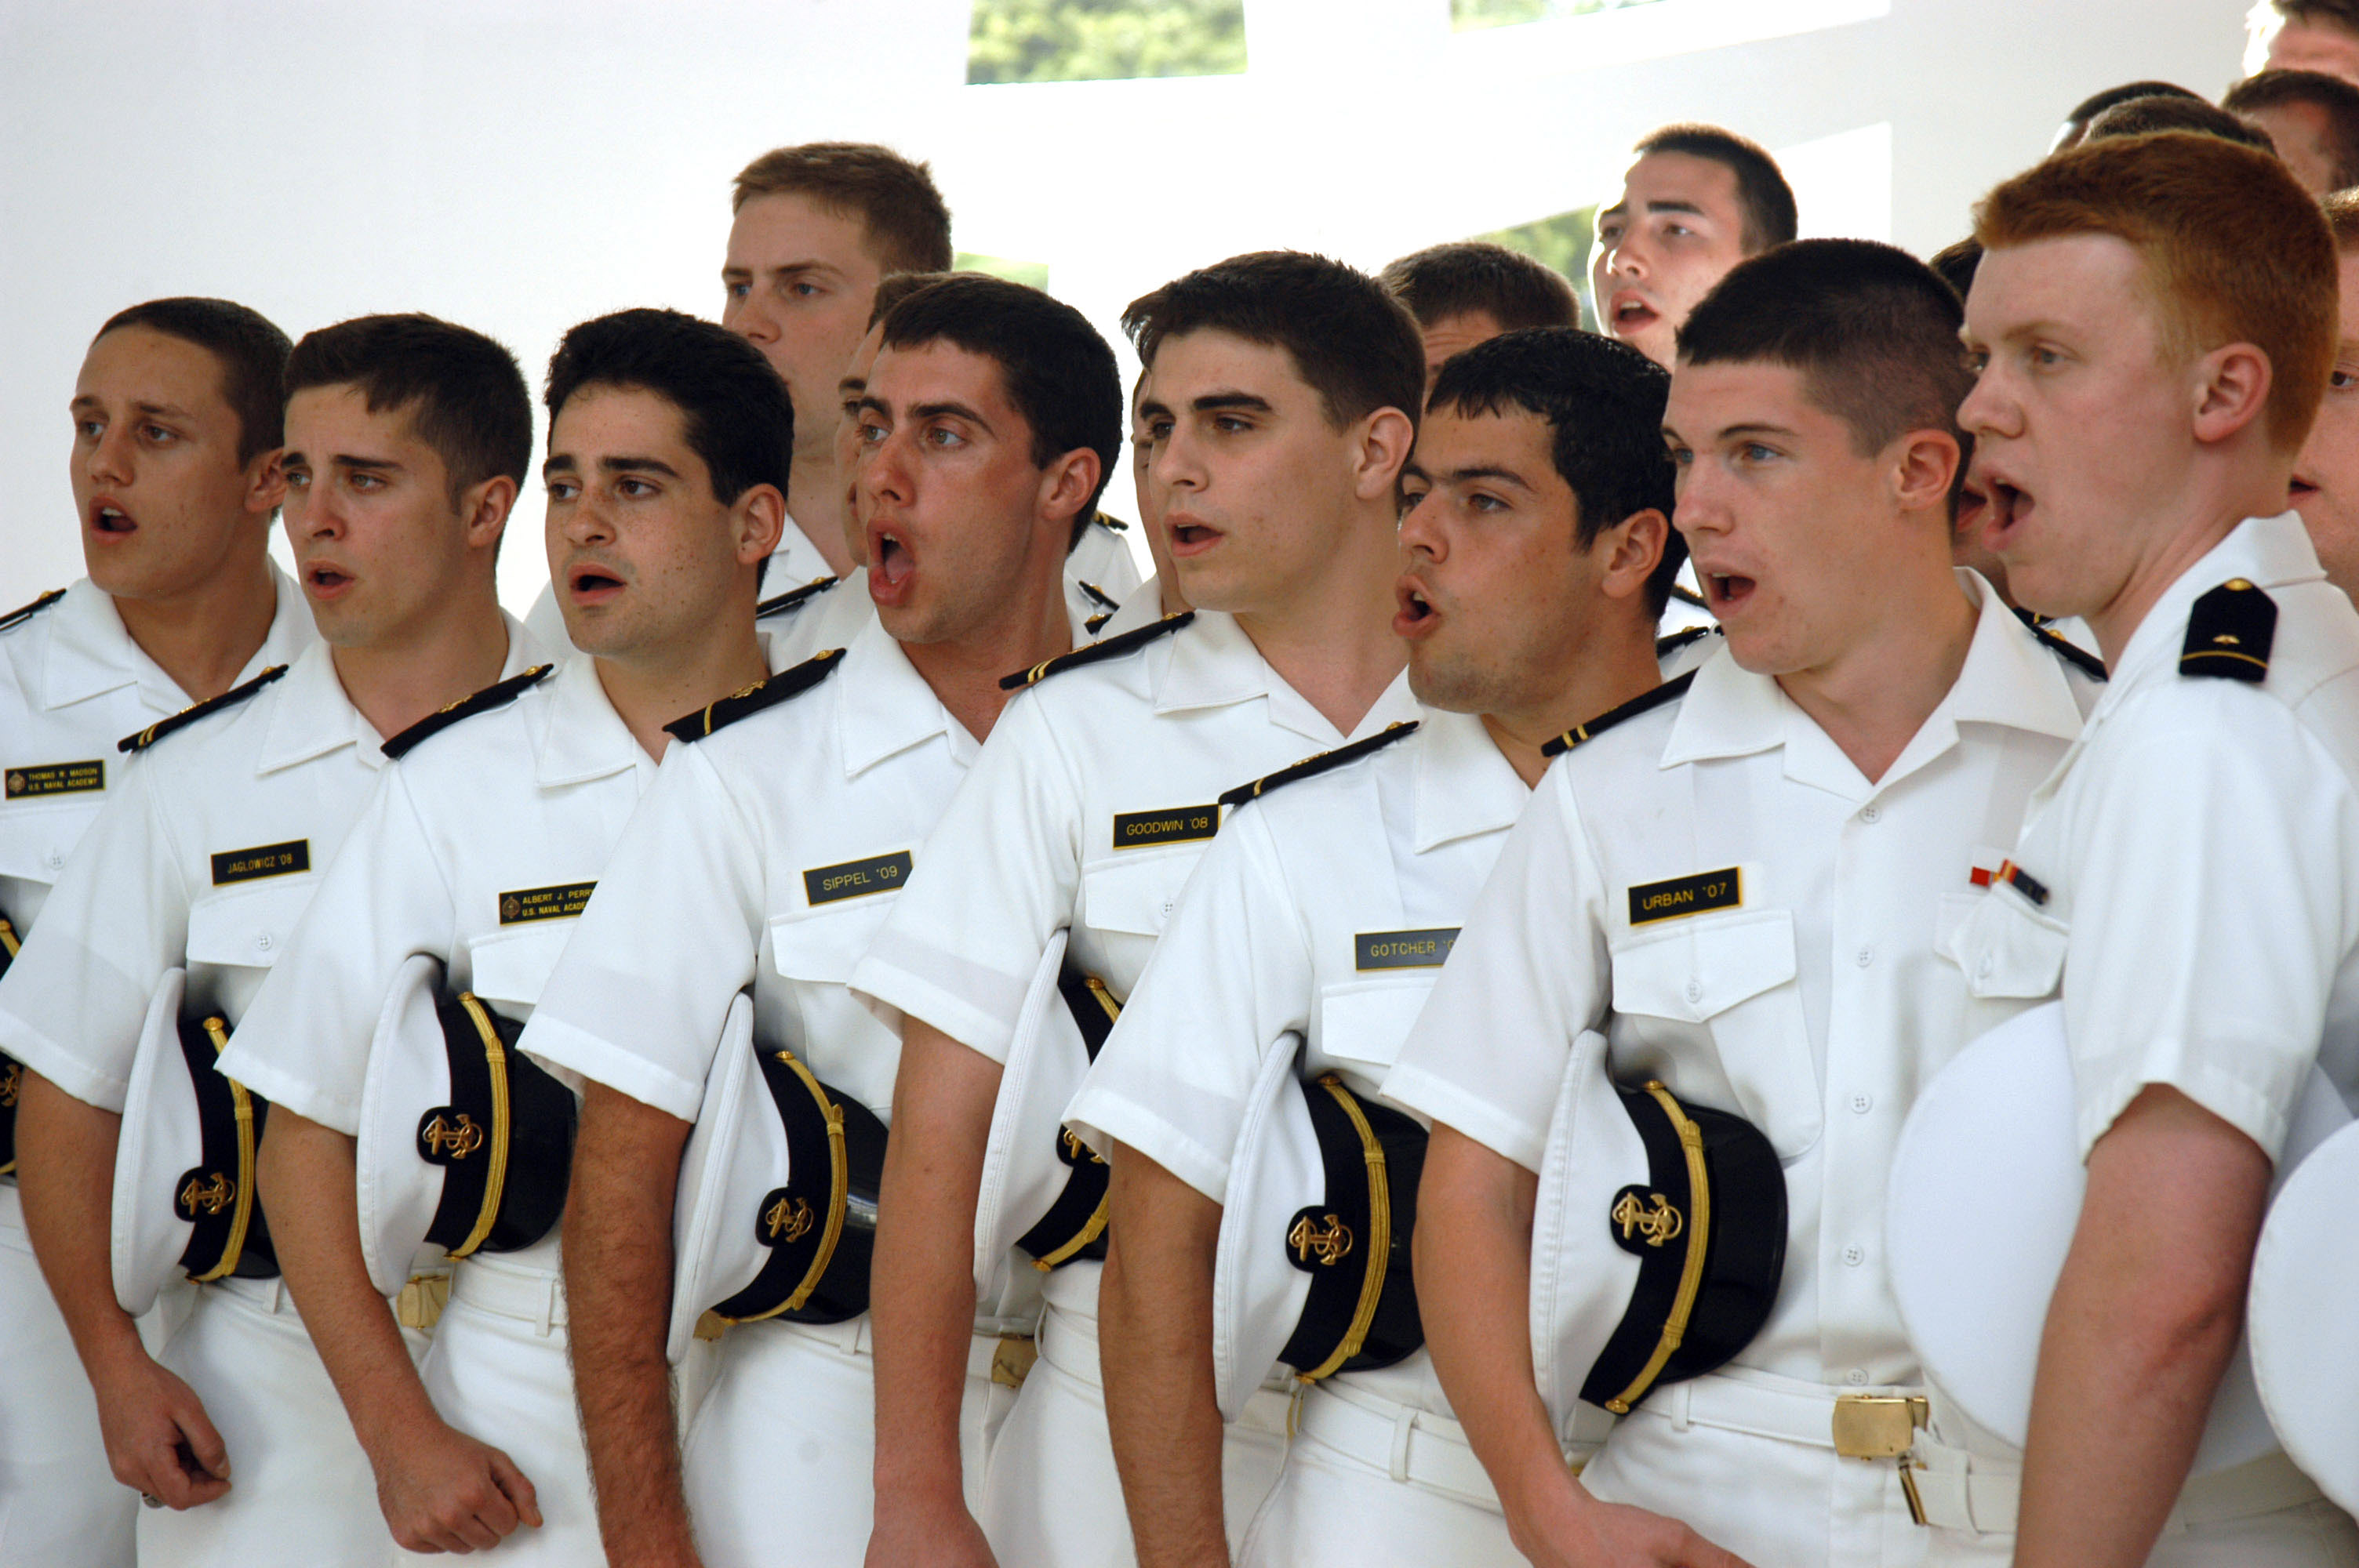 Navy men photo 85